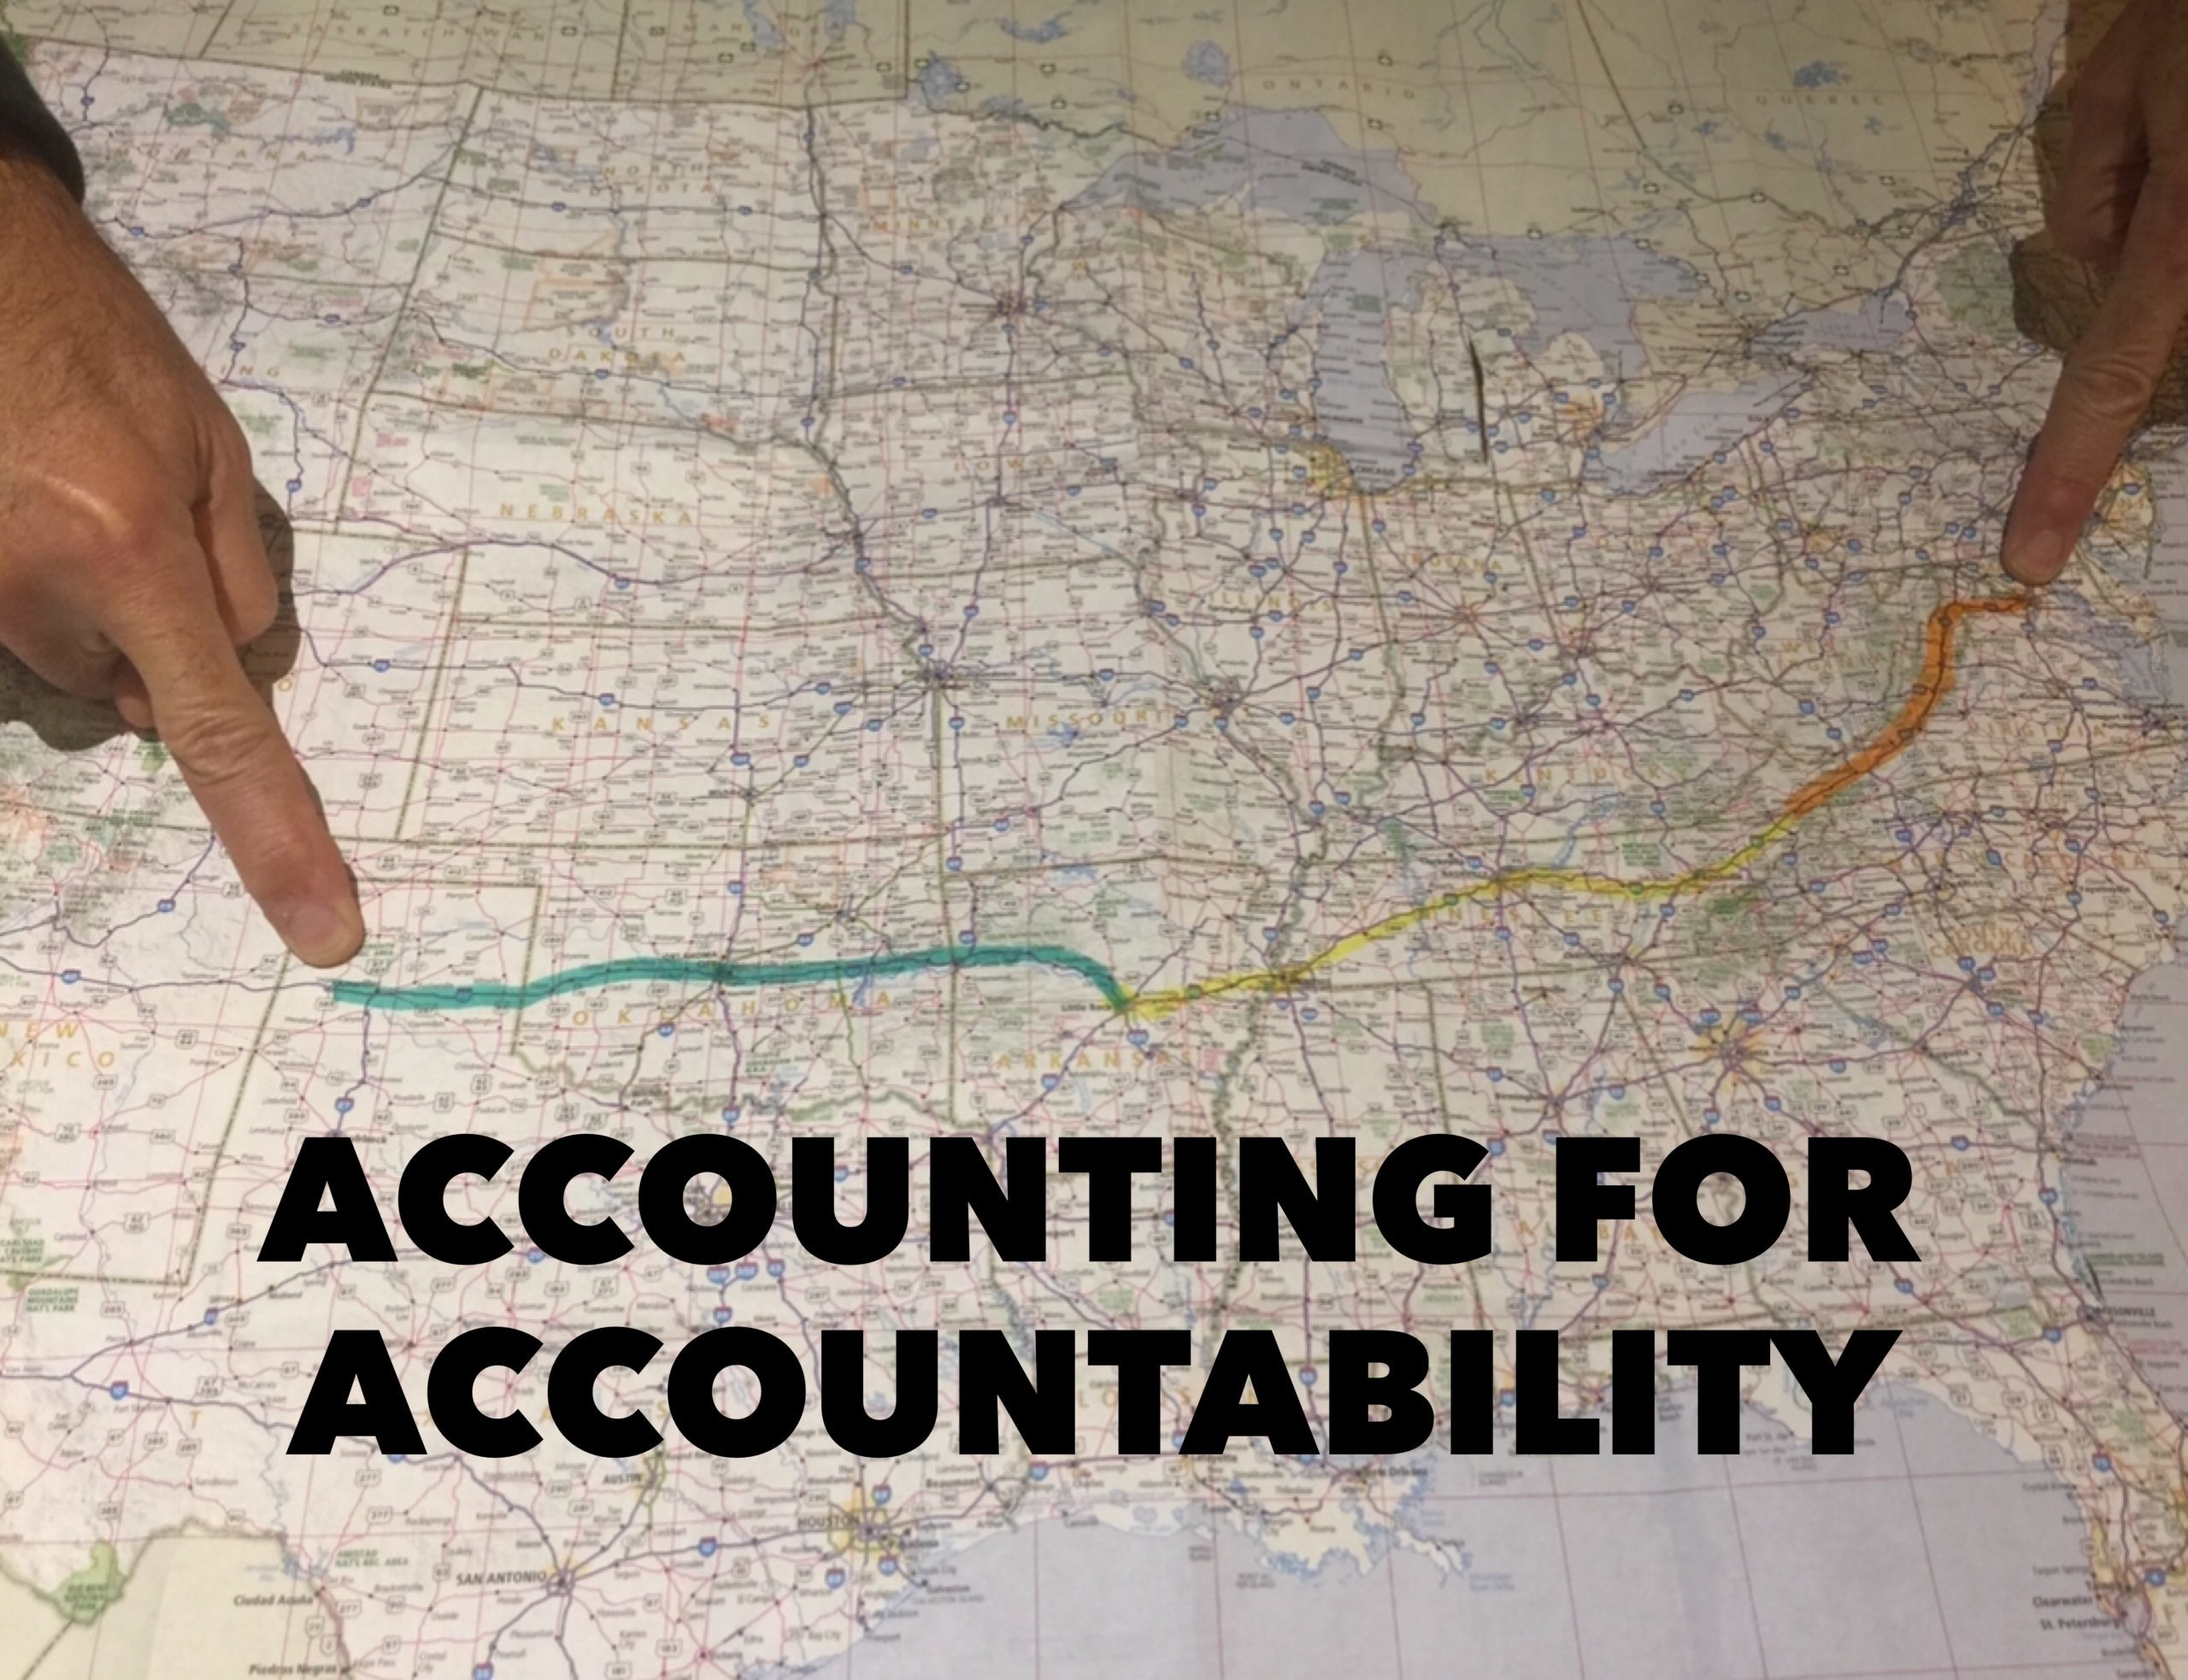 Accounting for Accountability